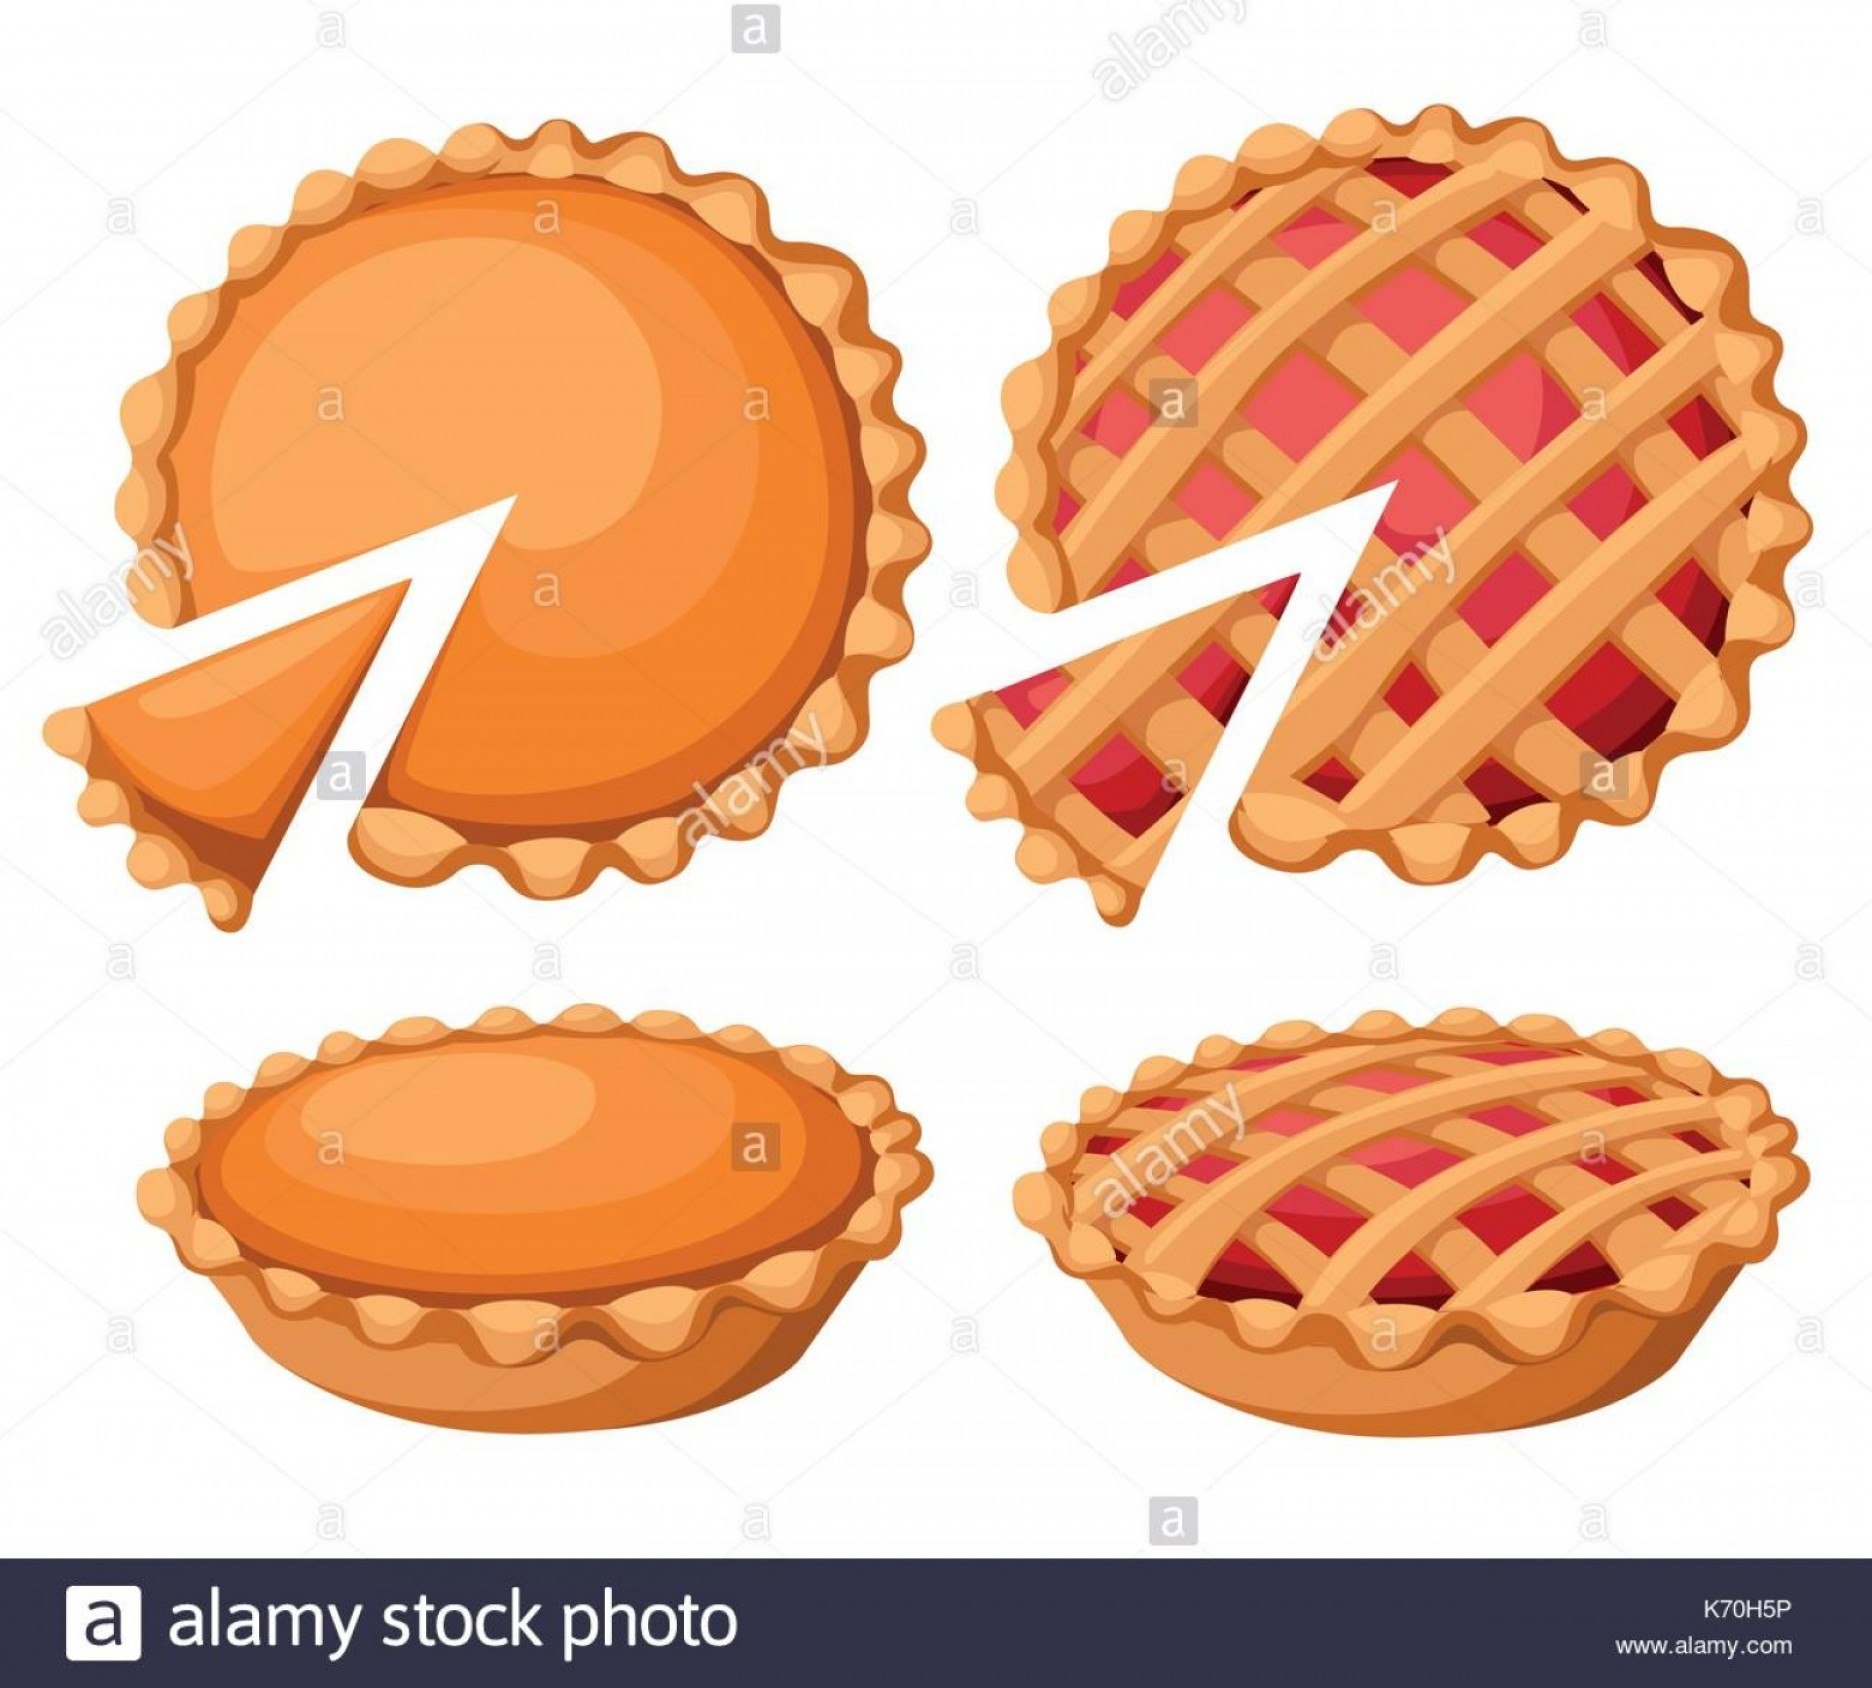 Vectors Holiday Baking: Stock Photo Pies Vector Illustrationthanksgiving And Holiday Pumpkin Pie Happy